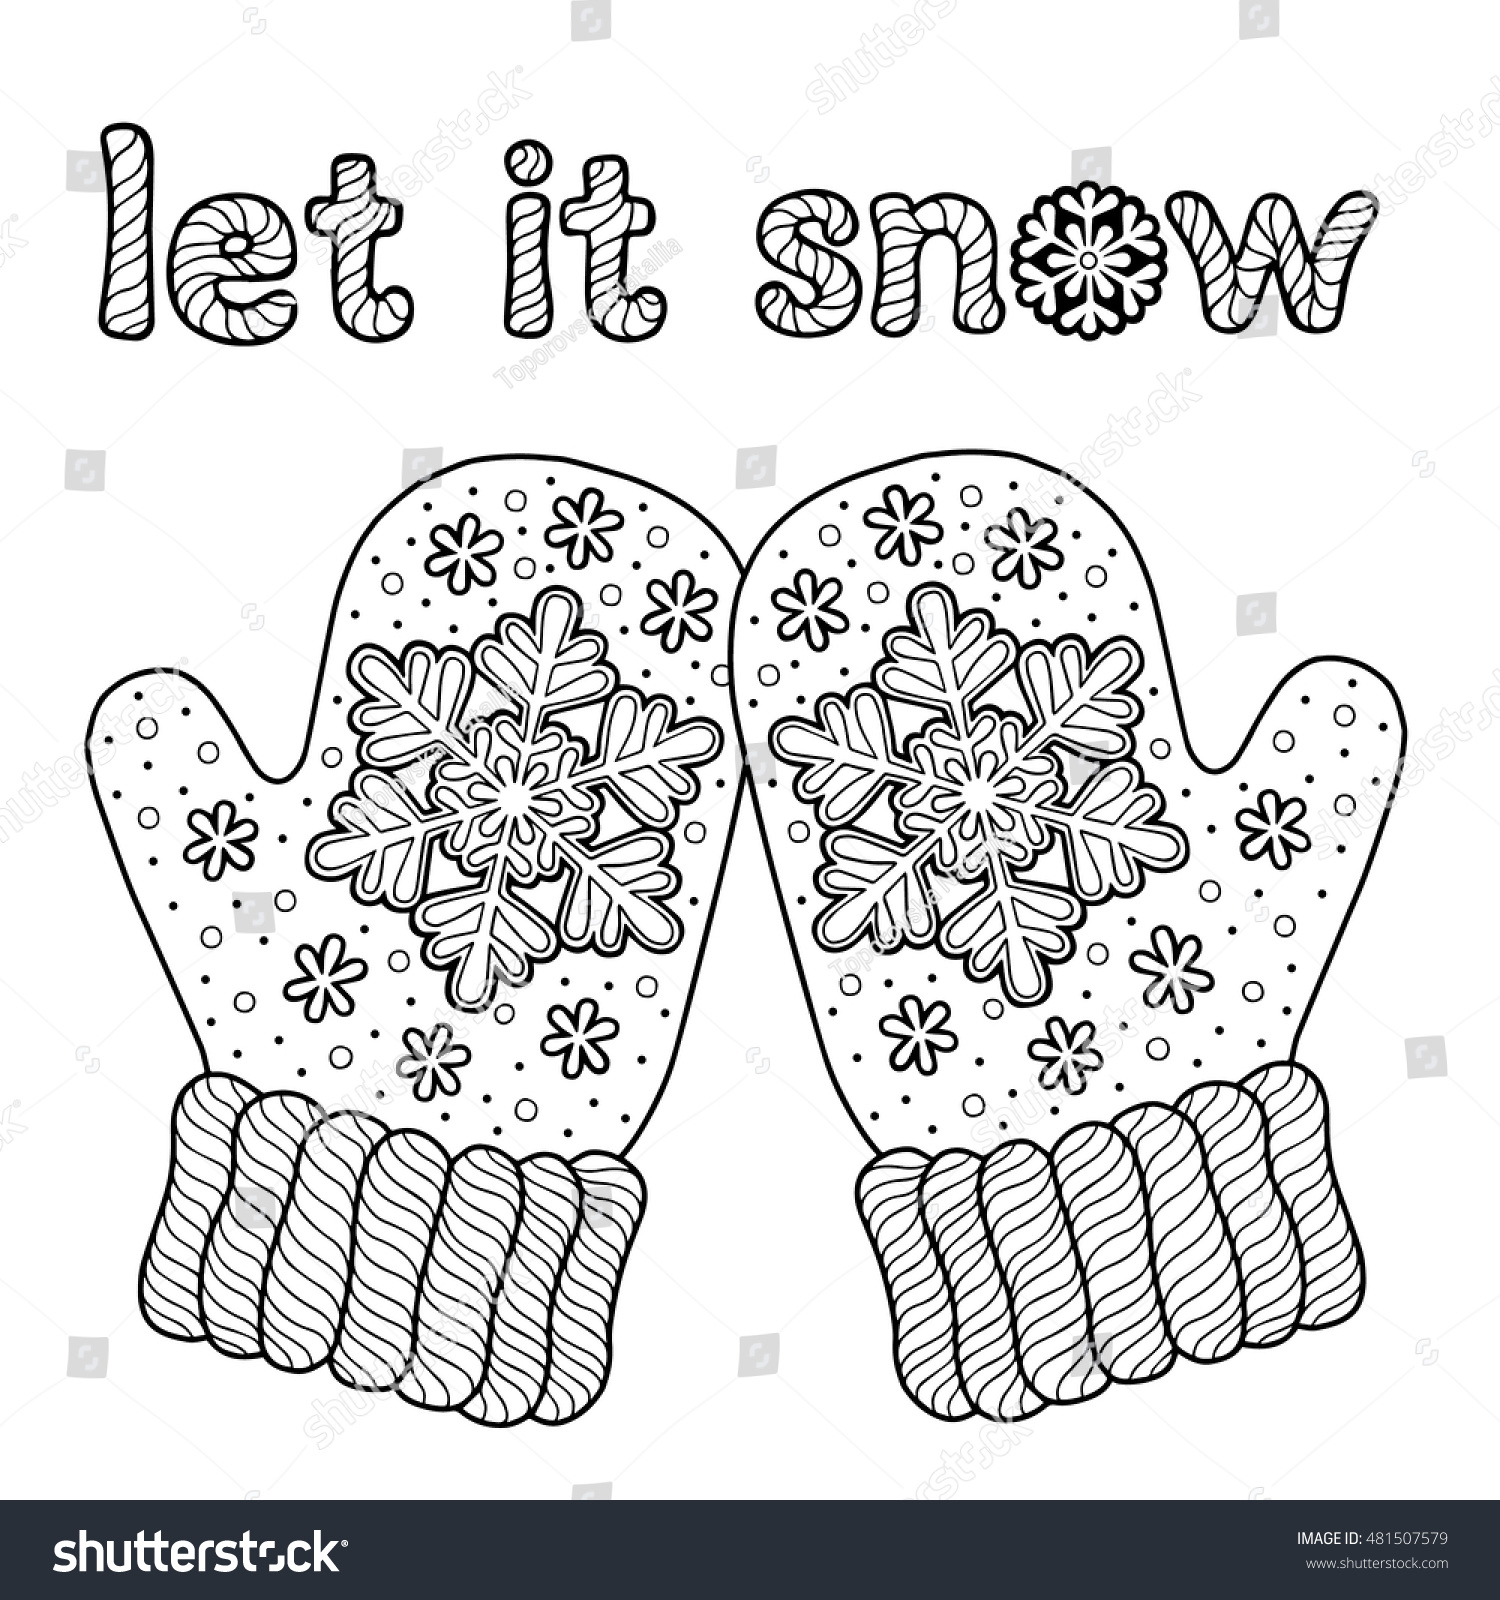 Let Snow Coloring Page Adults Hand Stock Vector (Royalty Free ...